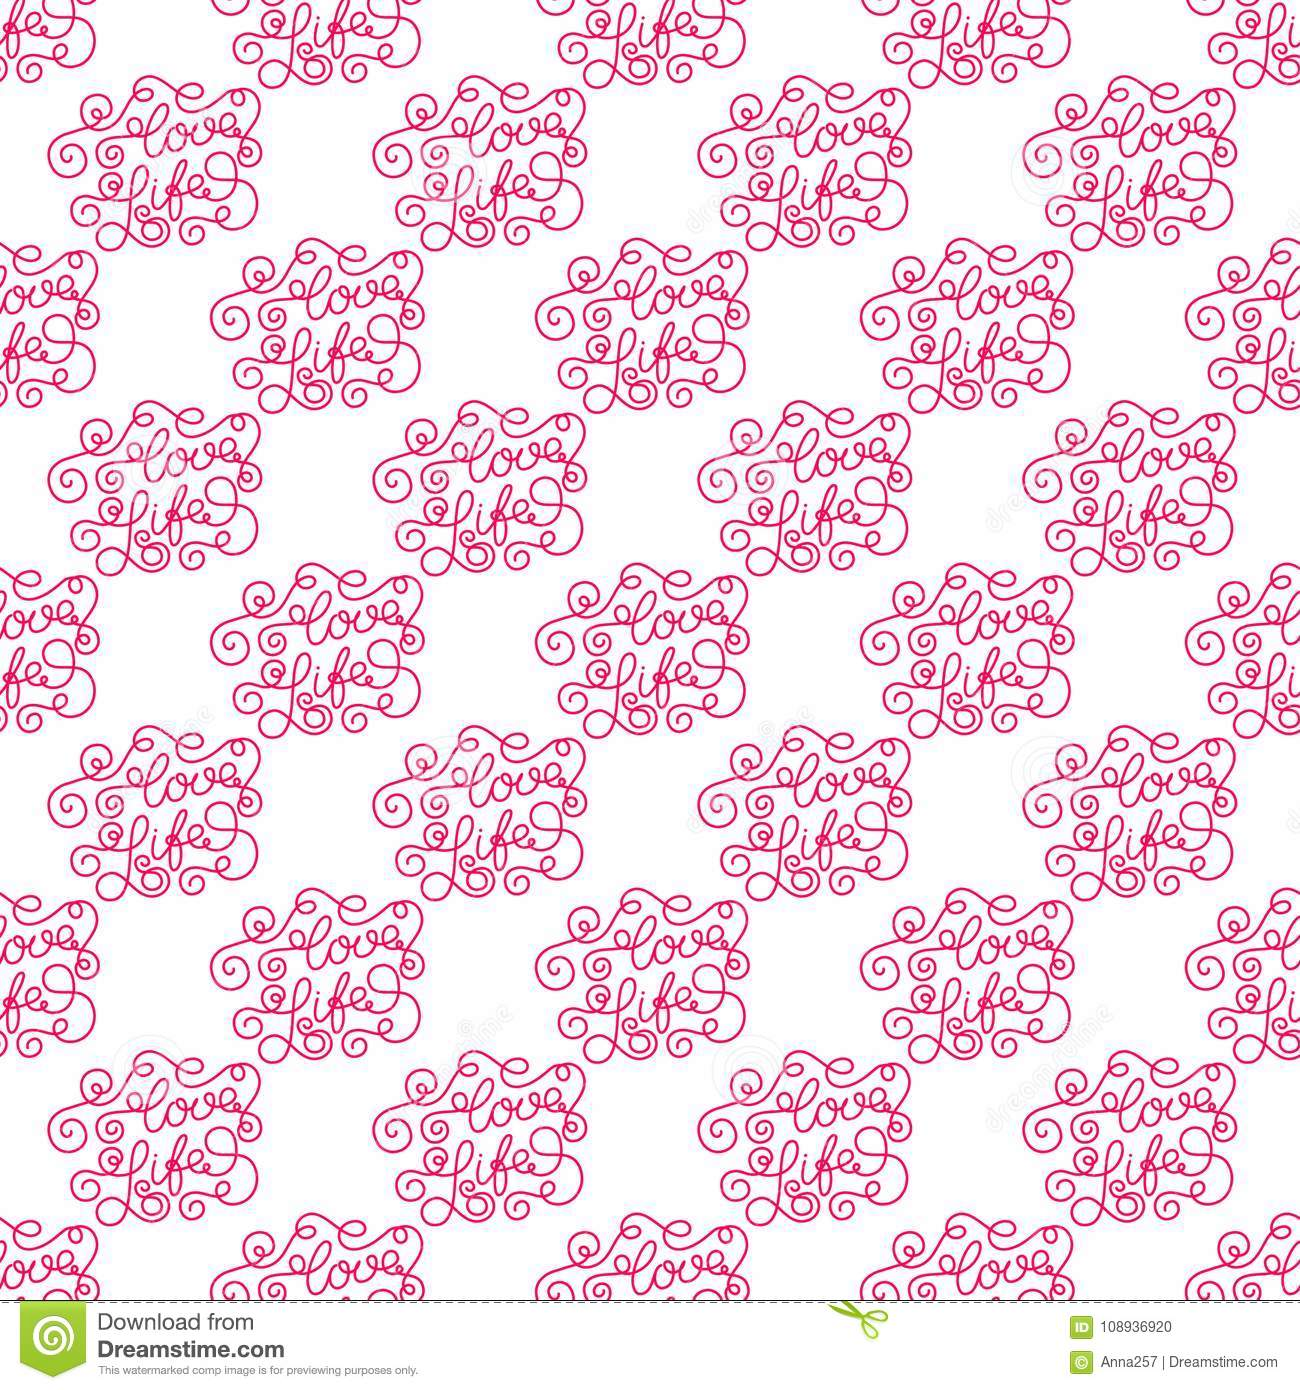 Valentines day romantic phrases seamless pattern background romantic phrases seamless pattern background template for a business card banner poster notebook present paper colourmoves Images